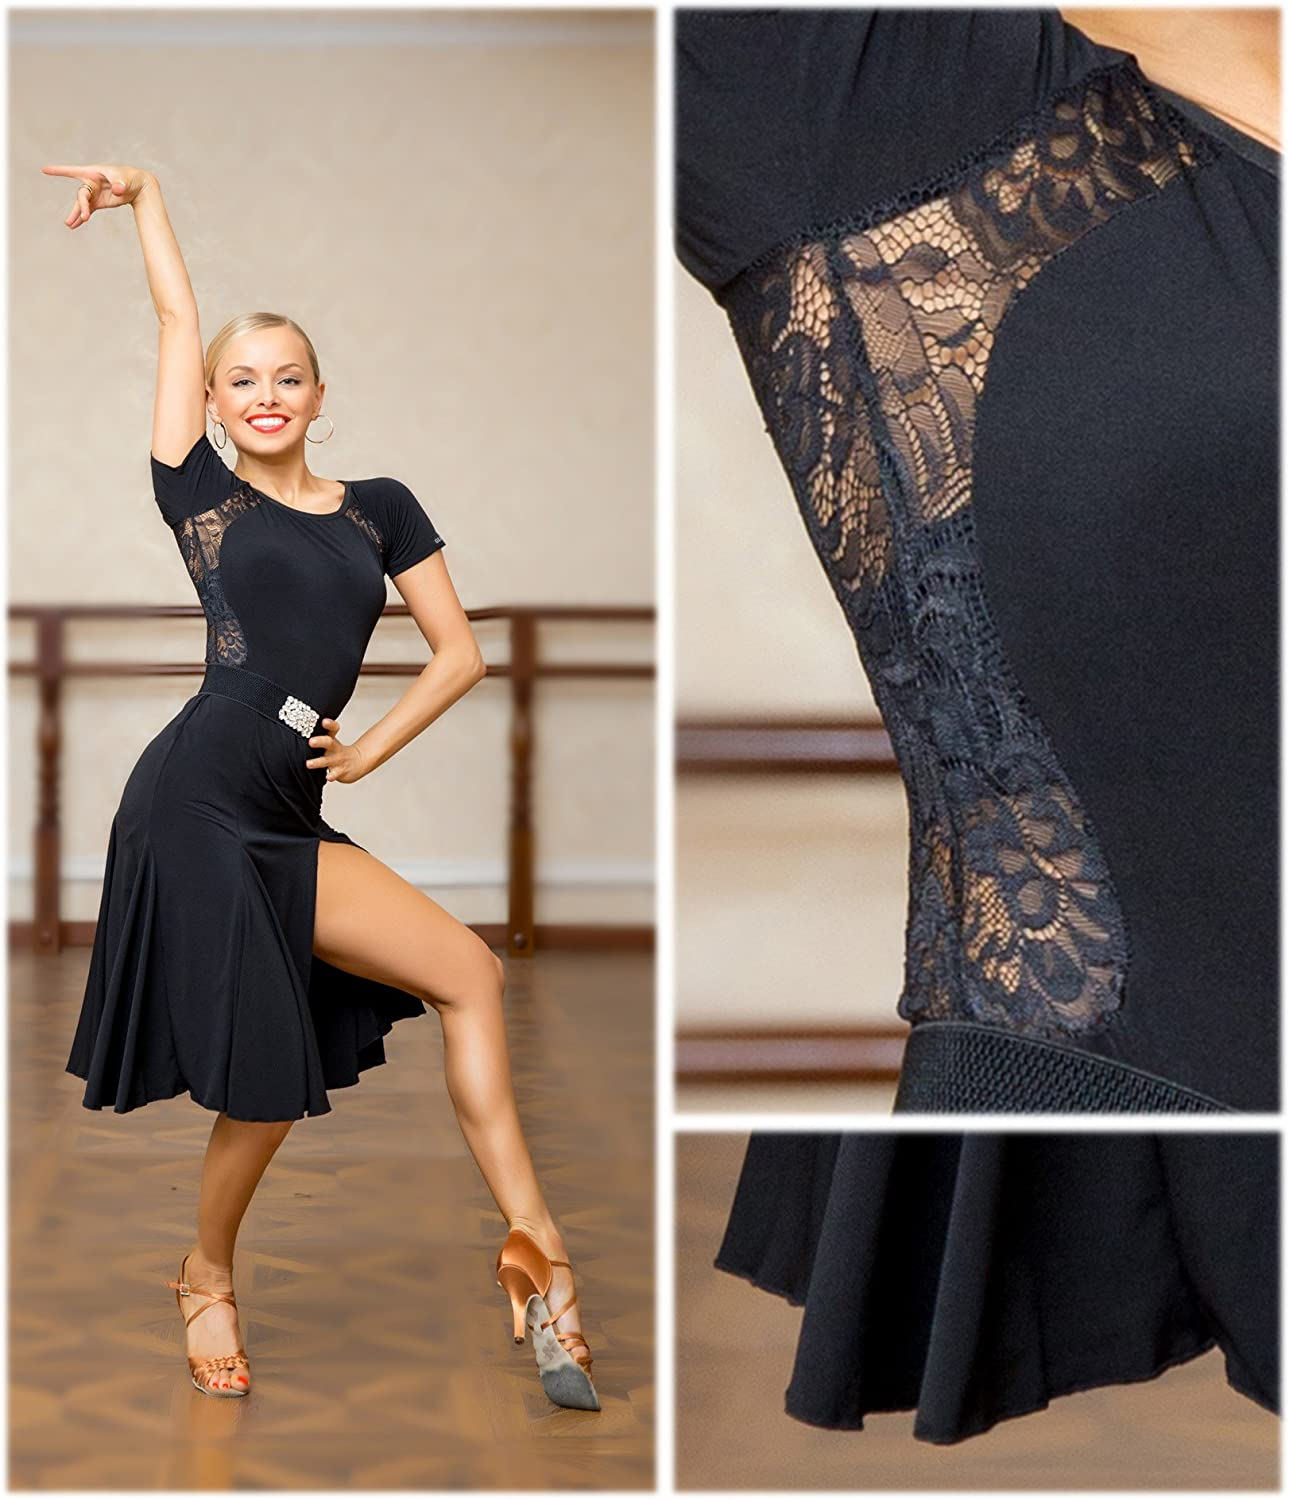 SCGGINTTANZ G1007 latin ballroom dance professional loose version swing design daily practice dress Note: contains a simple belt